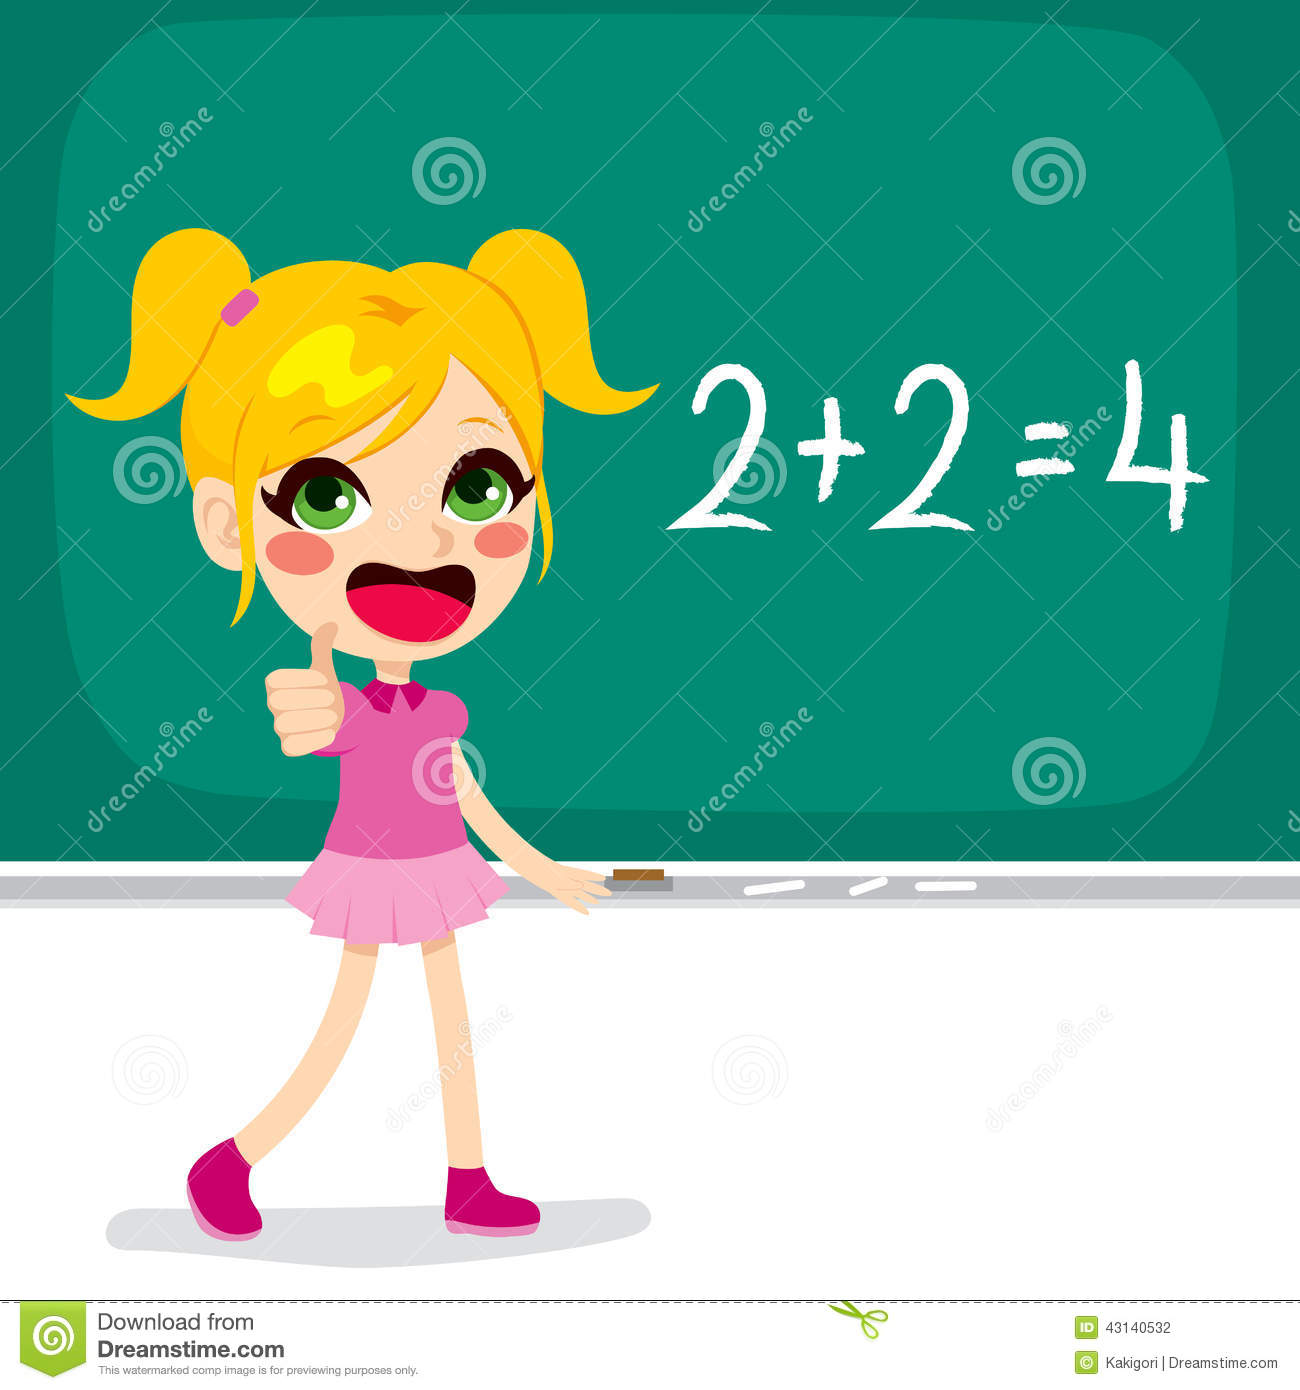 The need for children to participate in math enrichment programs ...